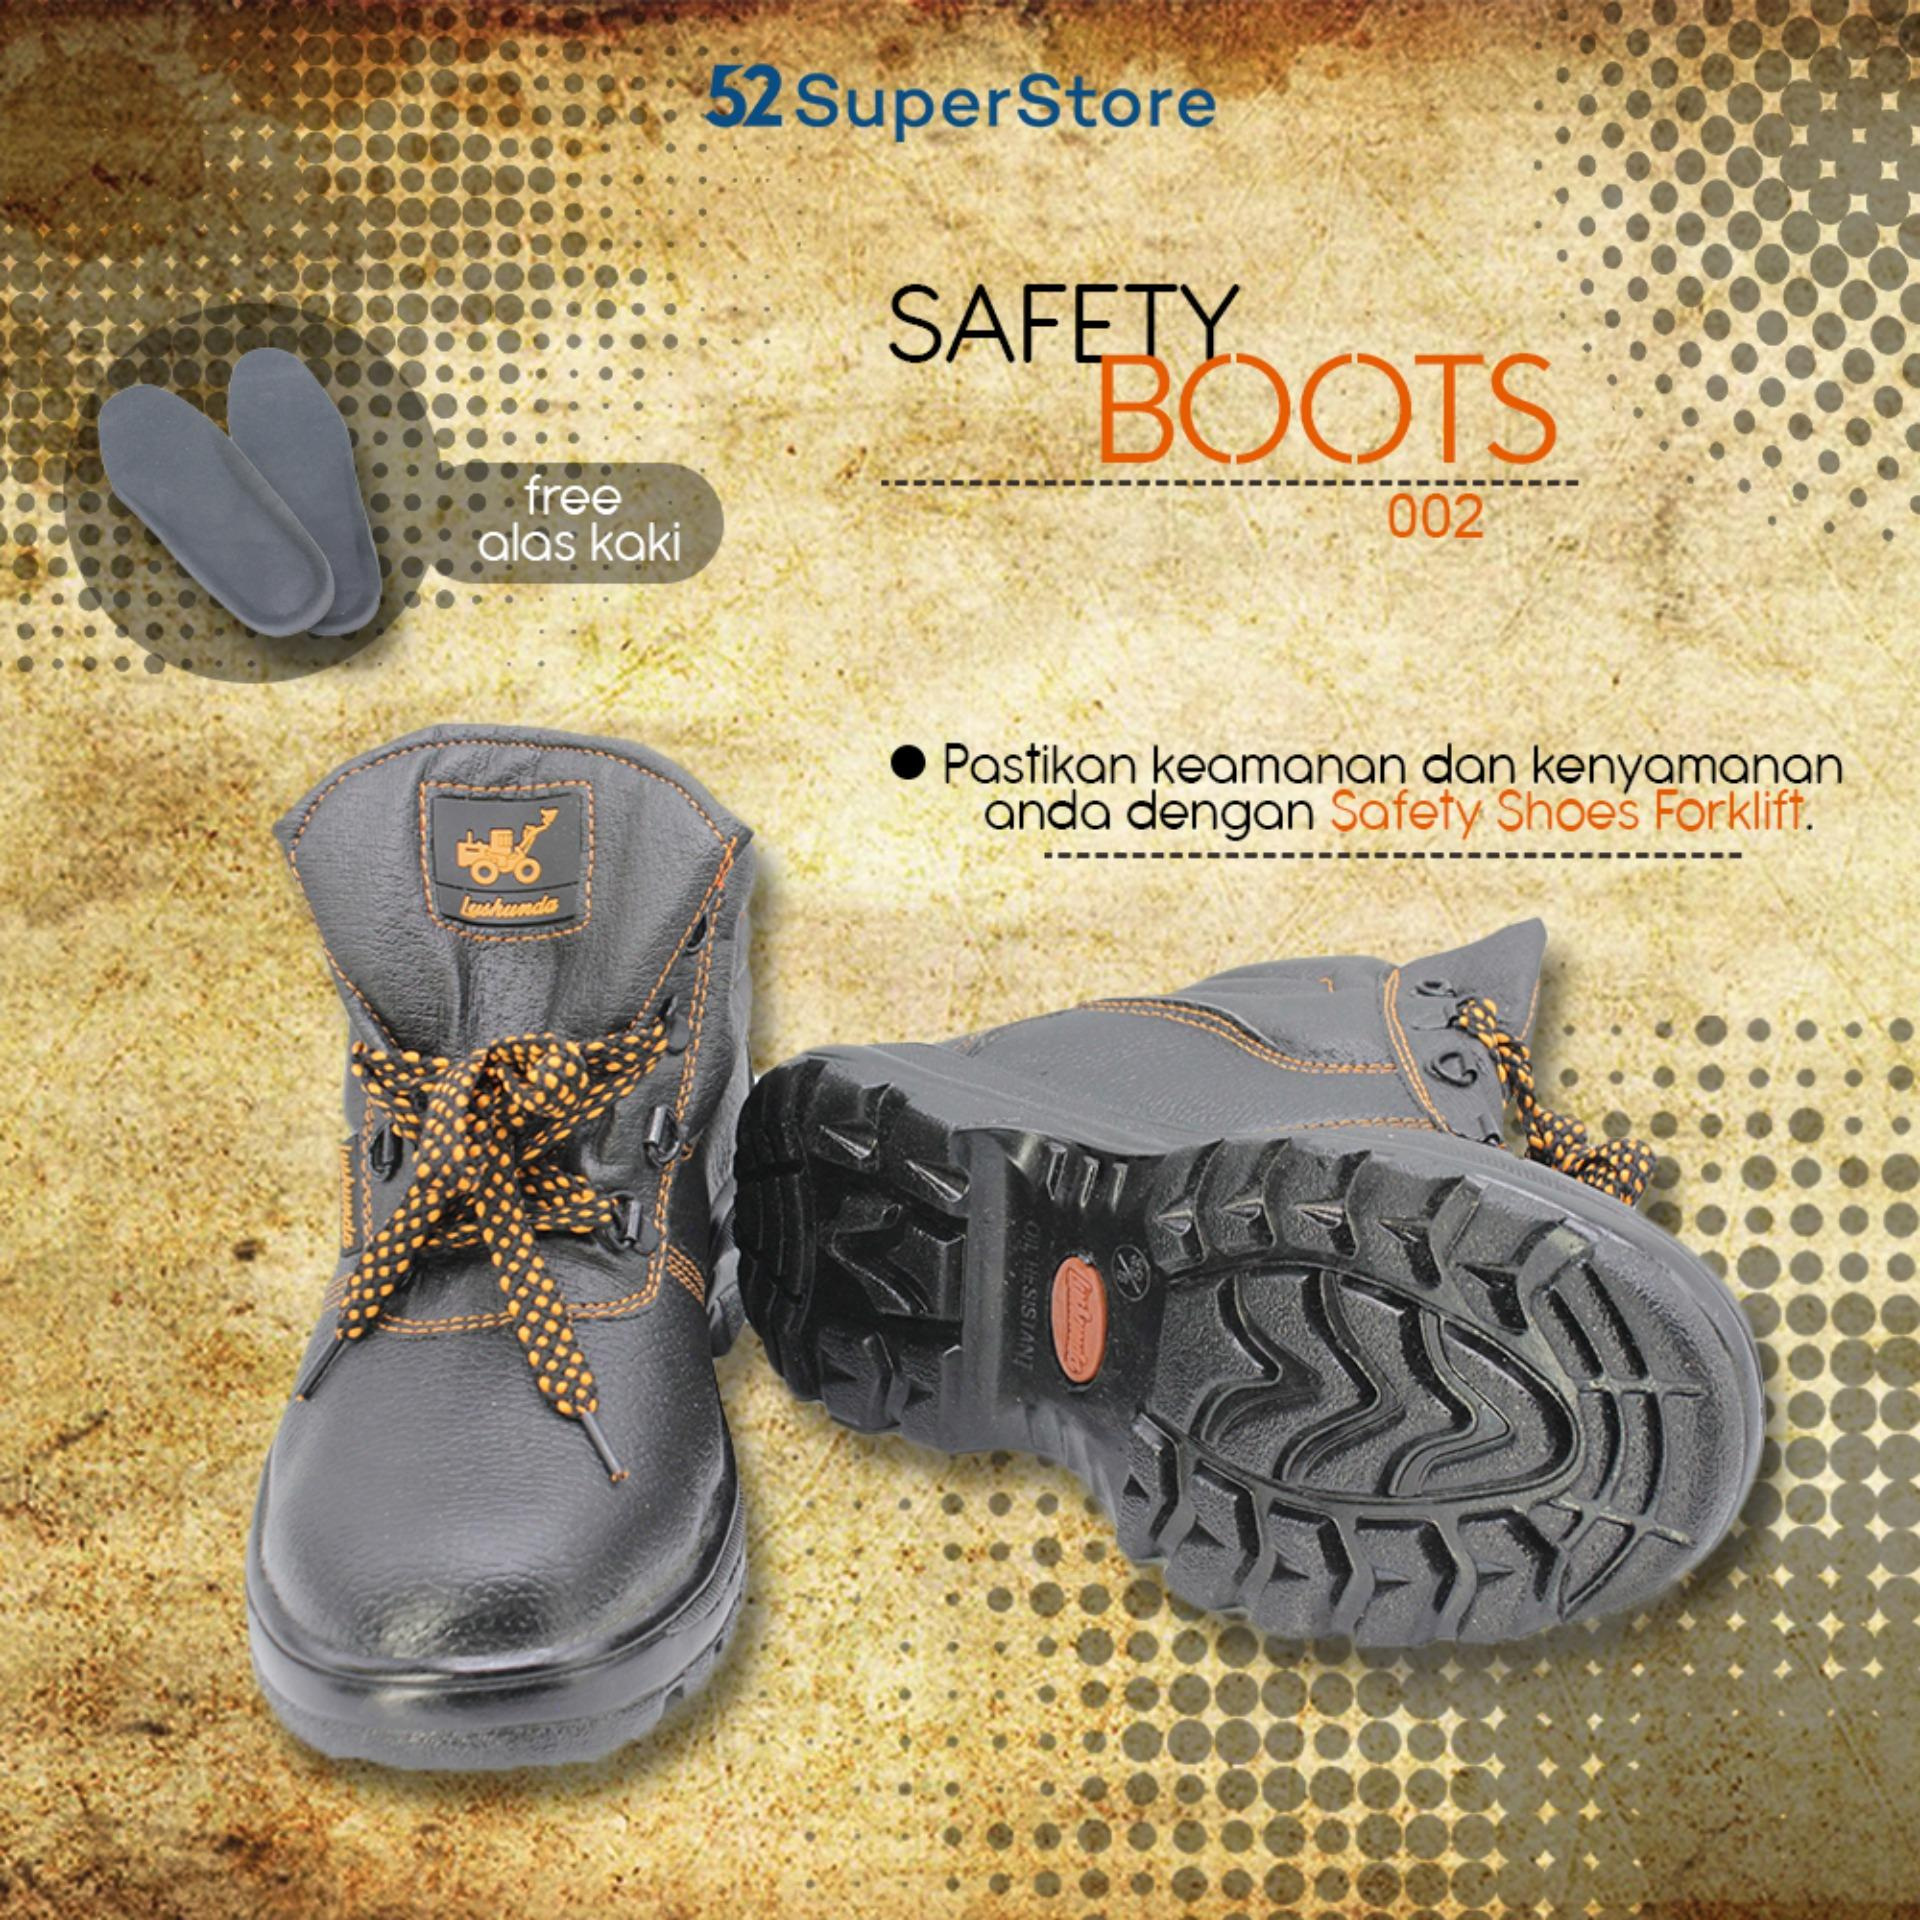 Buy Sell Cheapest 52 Fashion Sepatu Best Quality Product Deals Sandal Anak Laki 1604 306 Brown Size 26 31 Superstore Safety Shoes Forklift Kulit Sintetis 002 Hitam 39 46